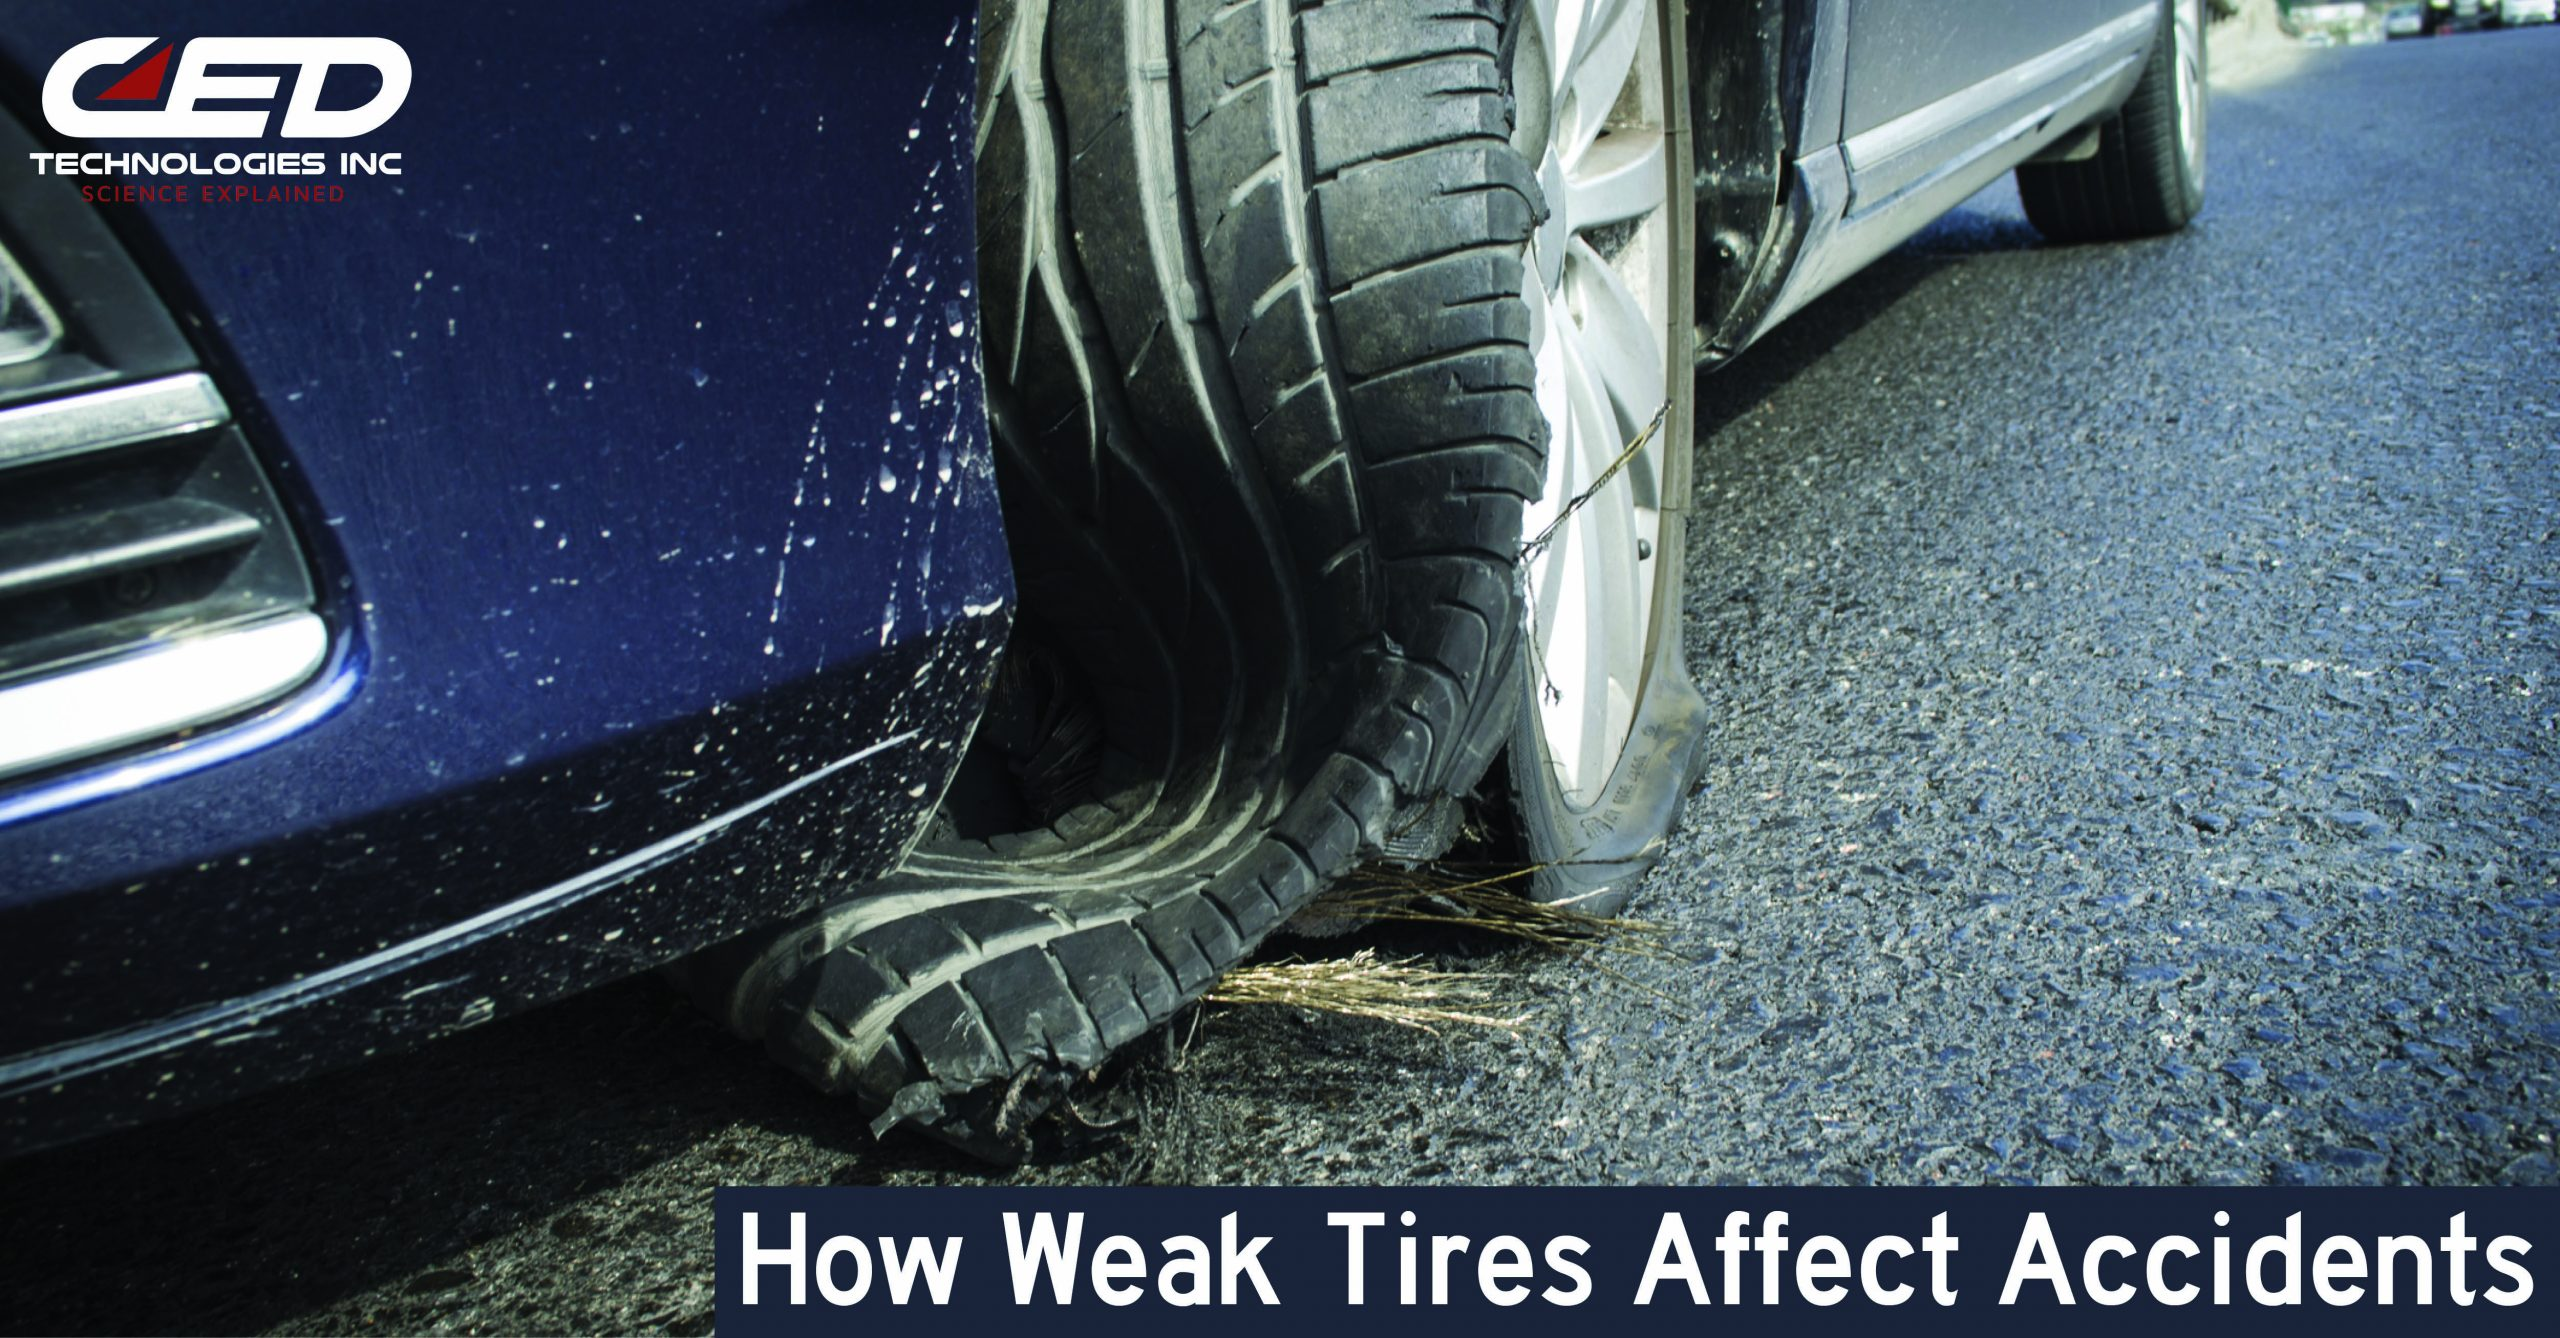 tires can affect accidents